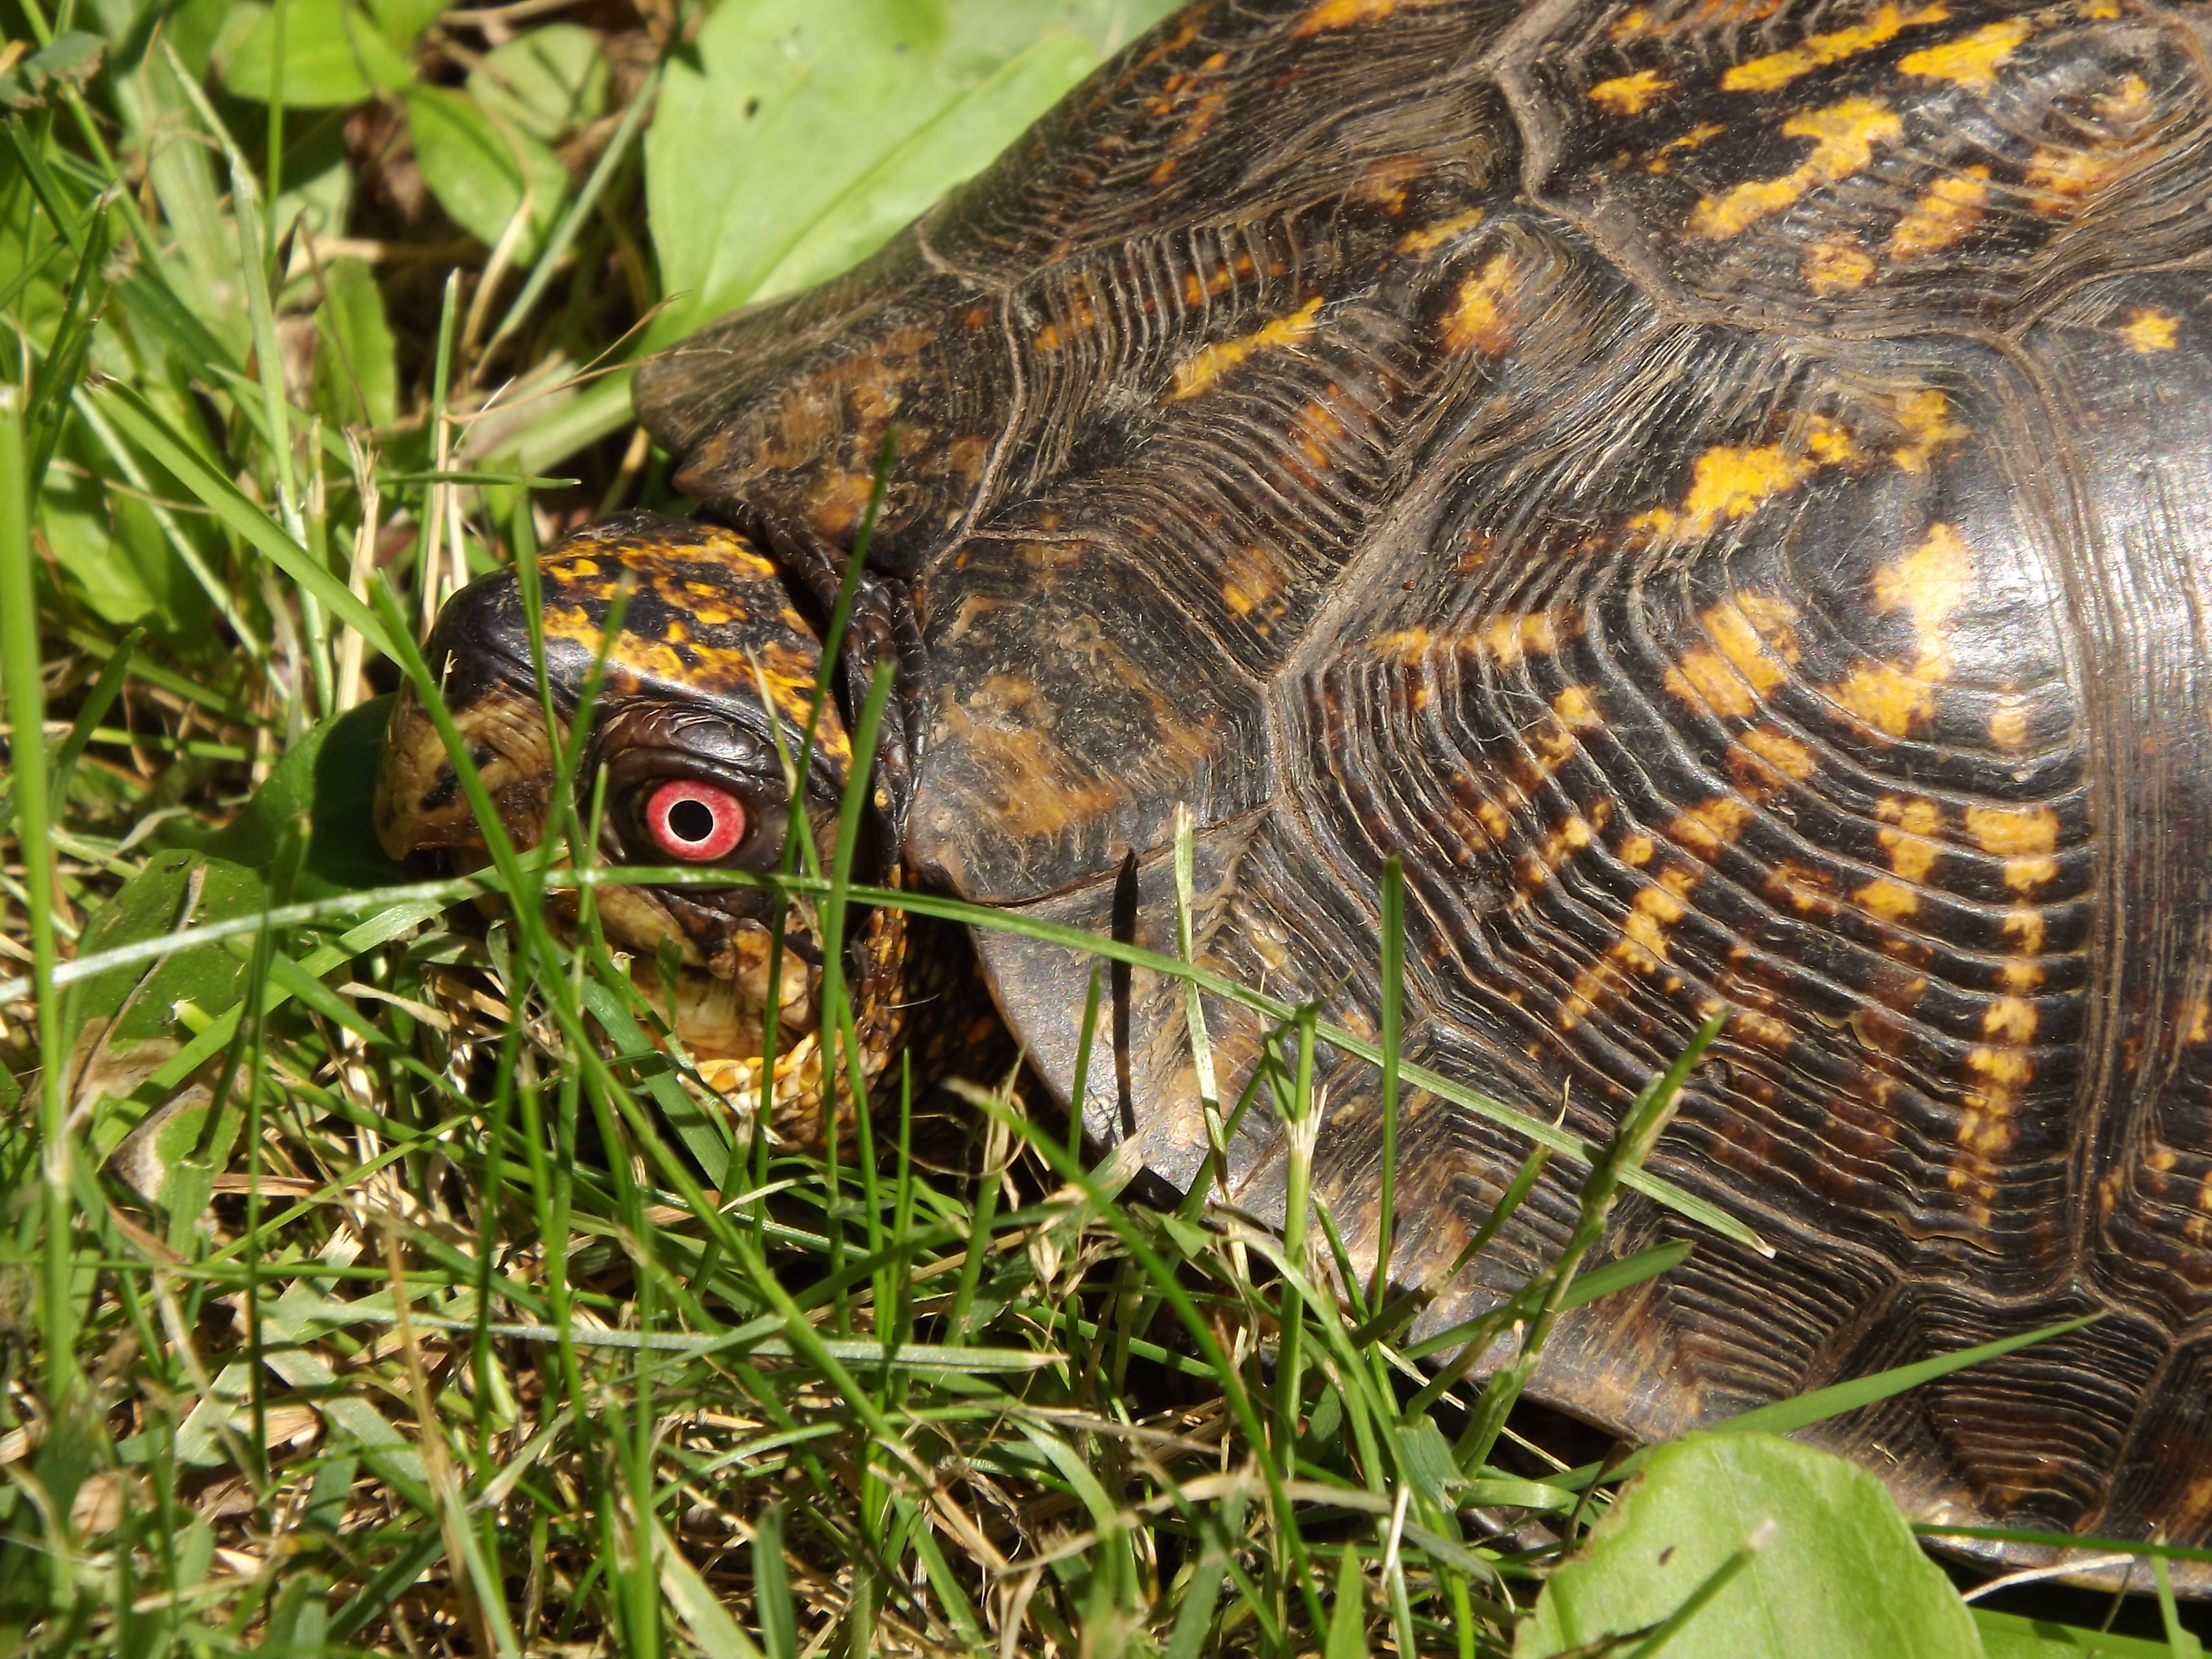 Eastern Box Turtle ( Terrapene carolina ) - I found this Easter Box Turtle in my mother's backyard. He had hunkered down underneath a large Norway Spruce tree and I couldn't get a very good photo, so I brought him out into the sunny grass for a few shots. Of course when I was done, I put him back where I found him.